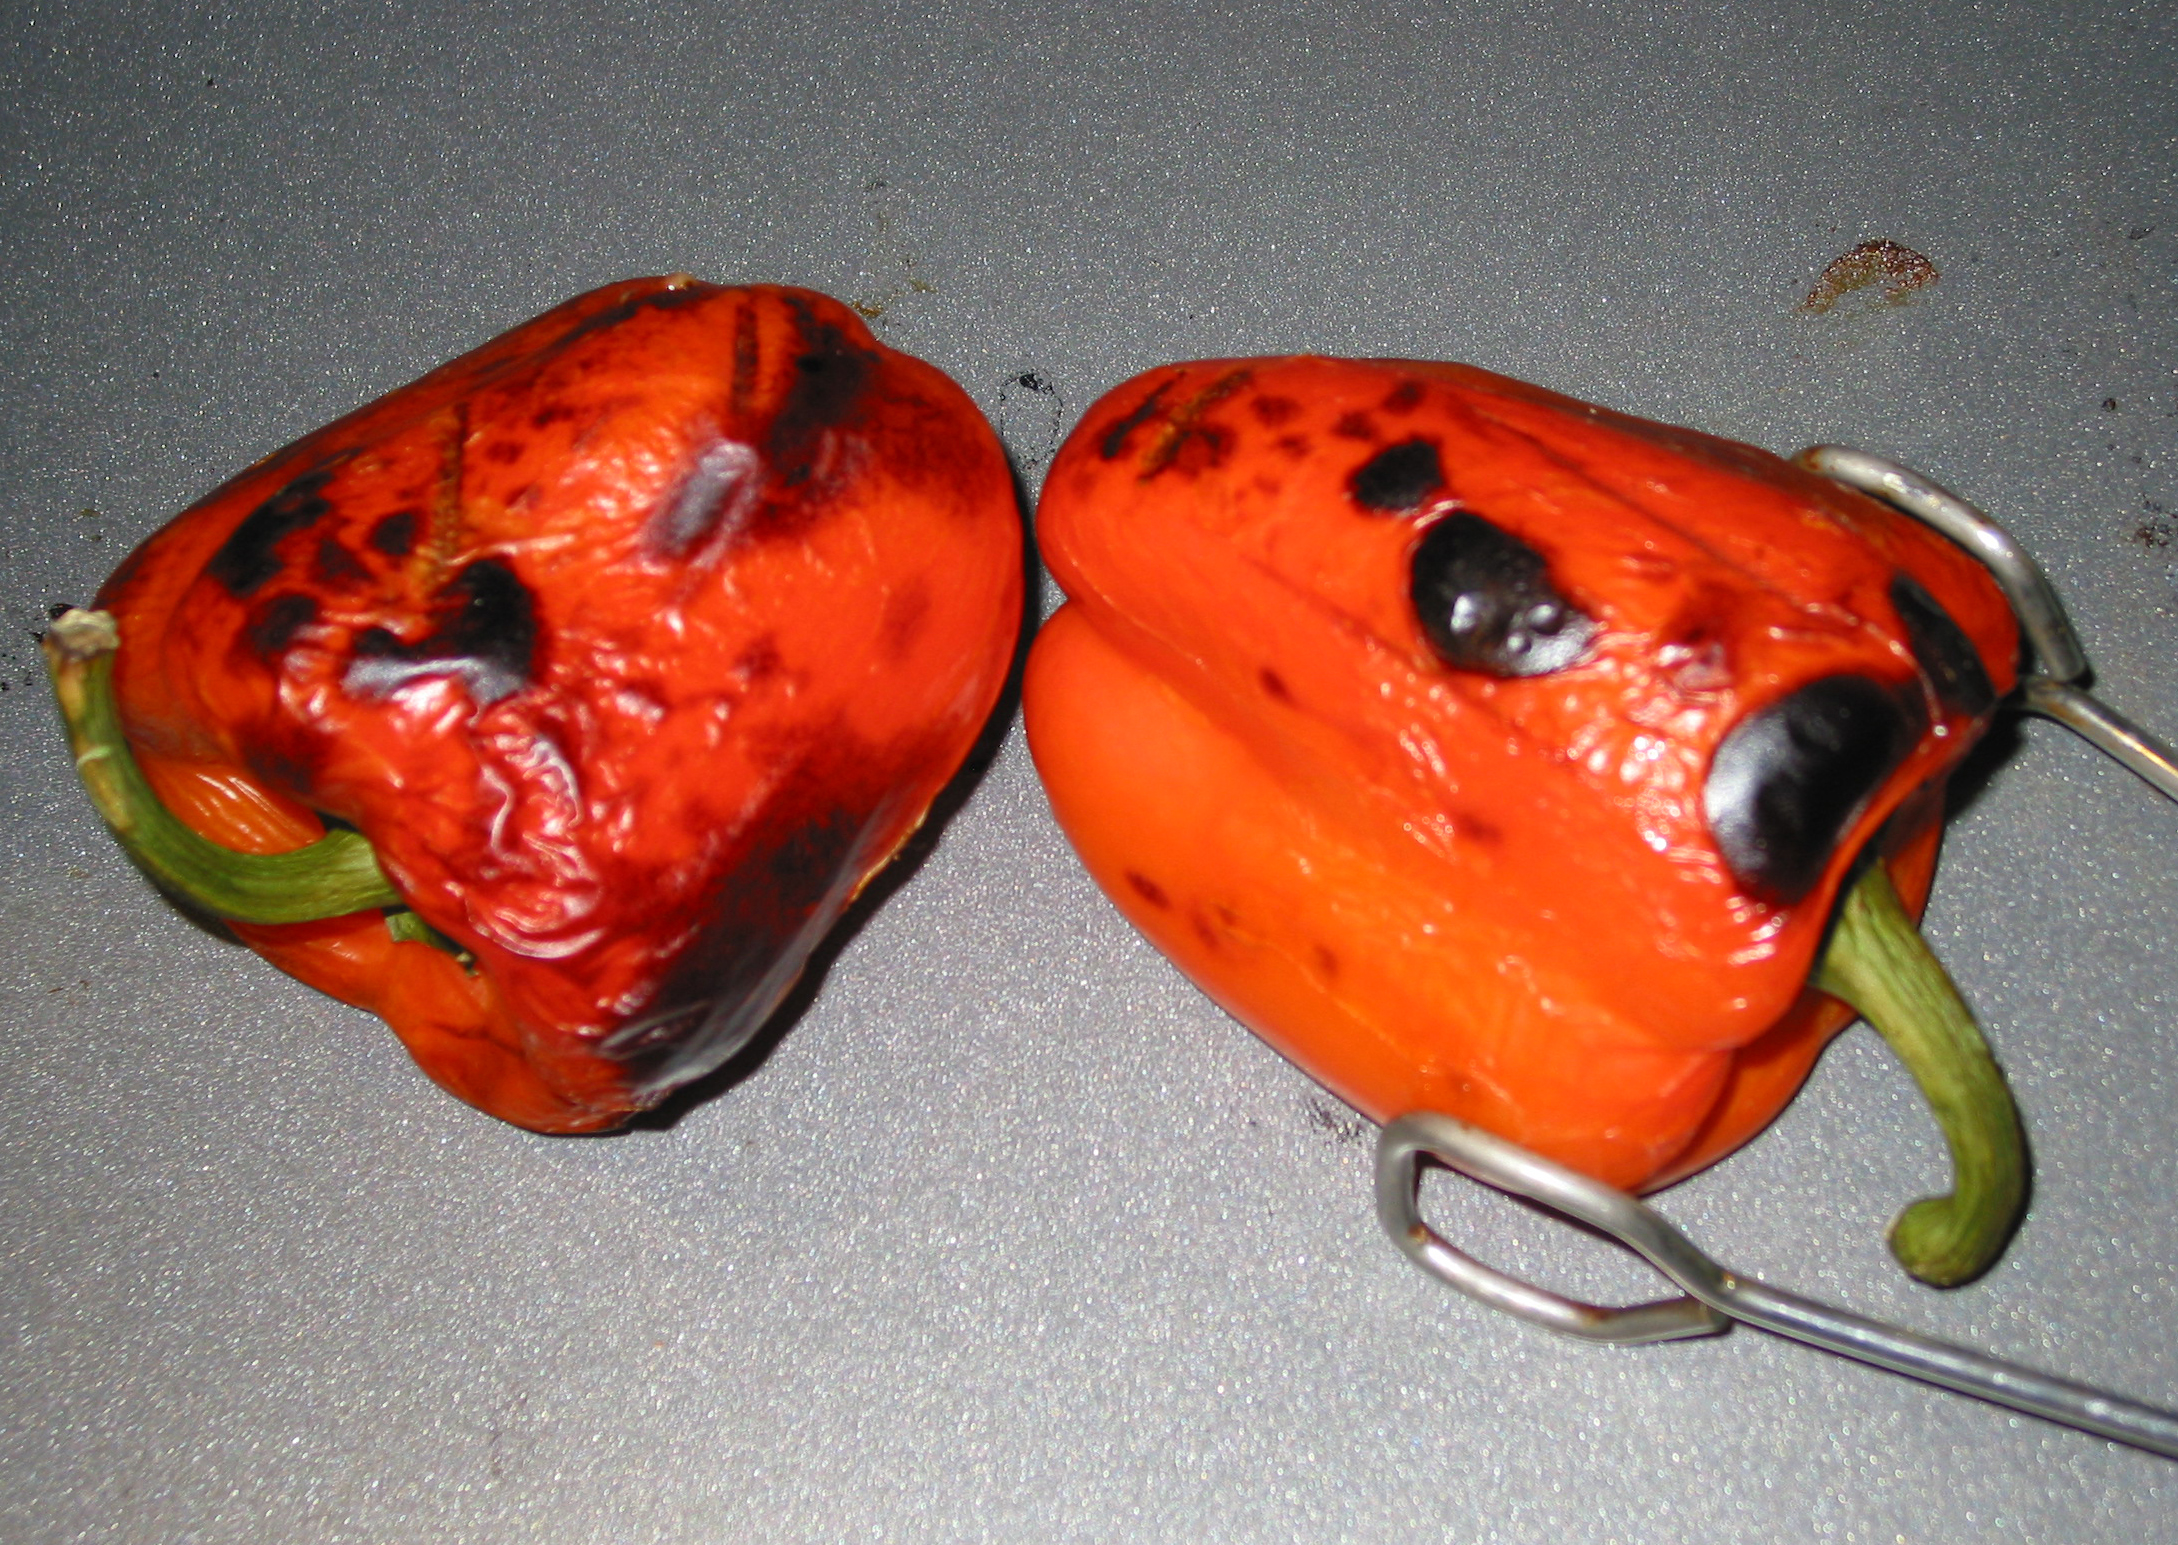 red bell peppers broiling in the oven